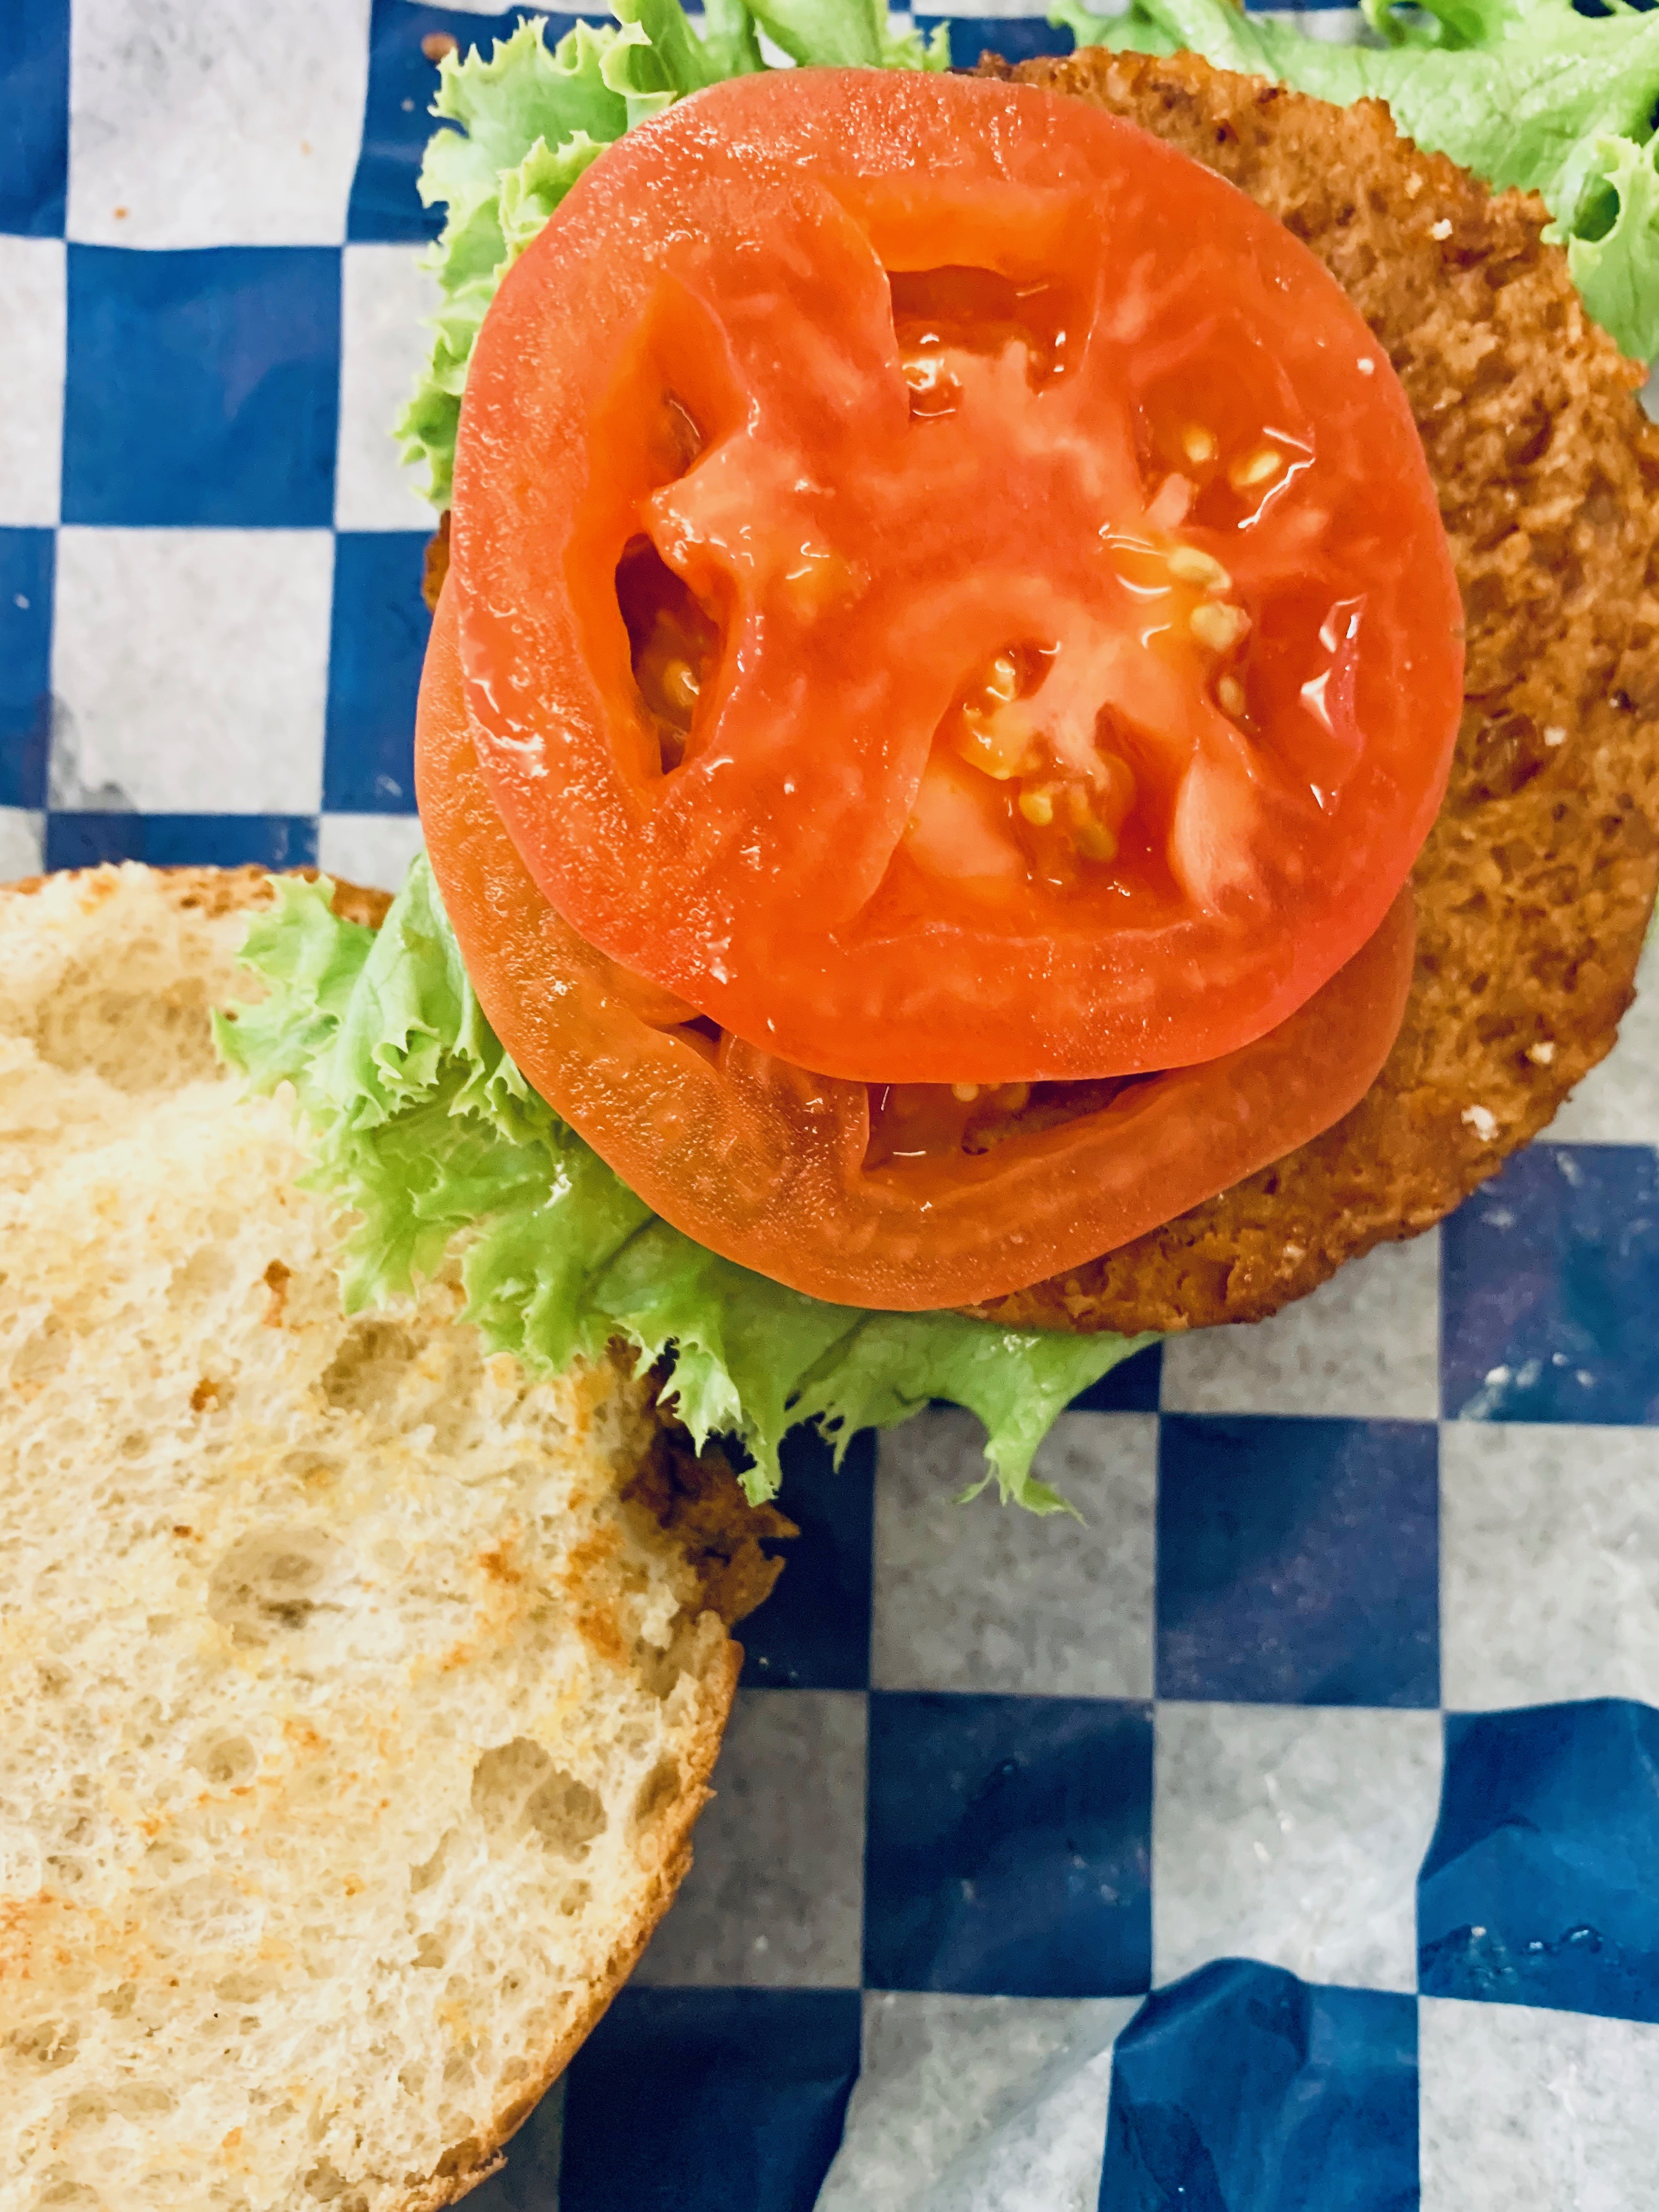 Plant-based burgers and other protein alternatives are making a more frequent appearance on campus dining hall menus. Photo: Yale University